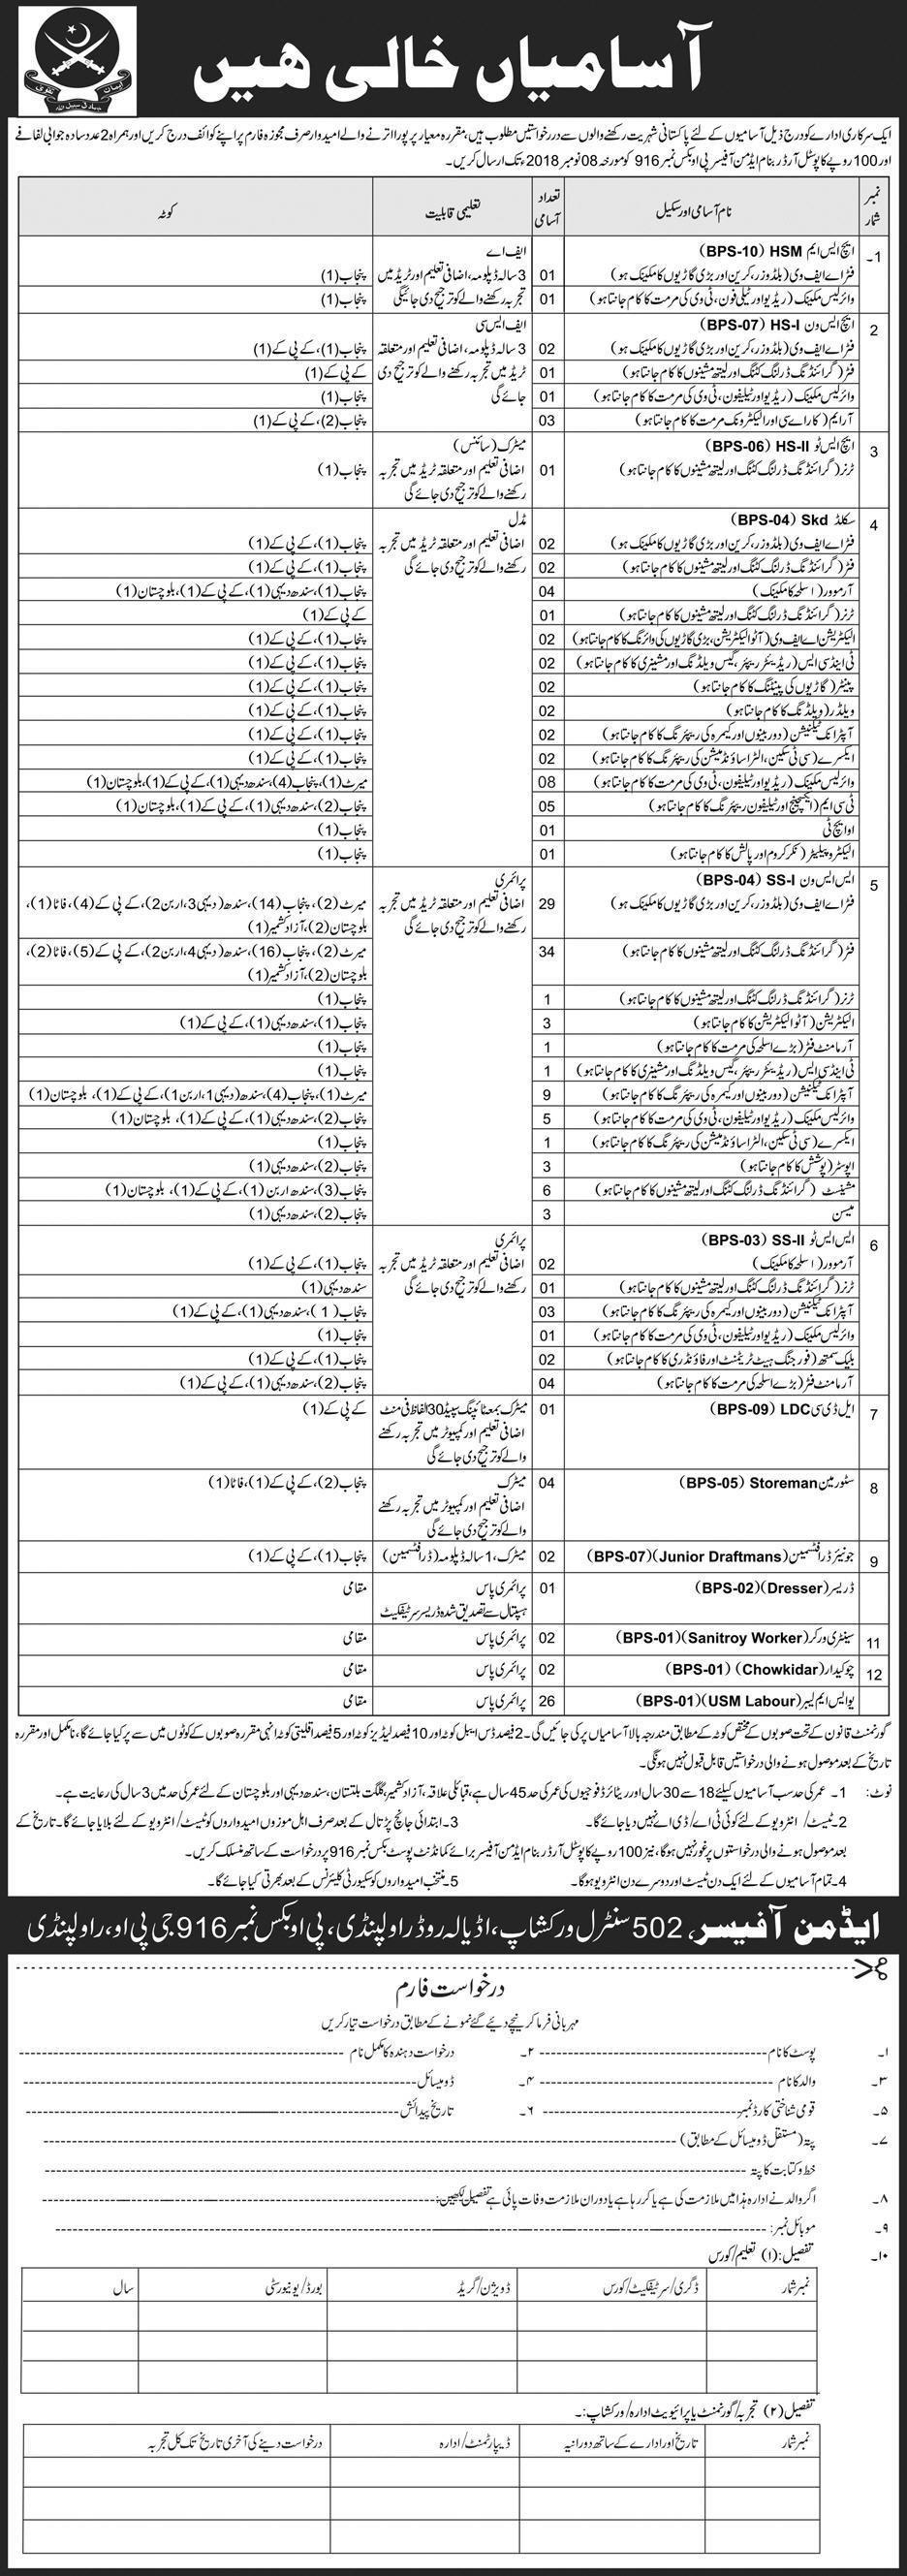 502 Workshop Rawalpindi Jobs 2018 Application Form Download502 Workshop Rawalpindi Jobs 2018 Application Form Download